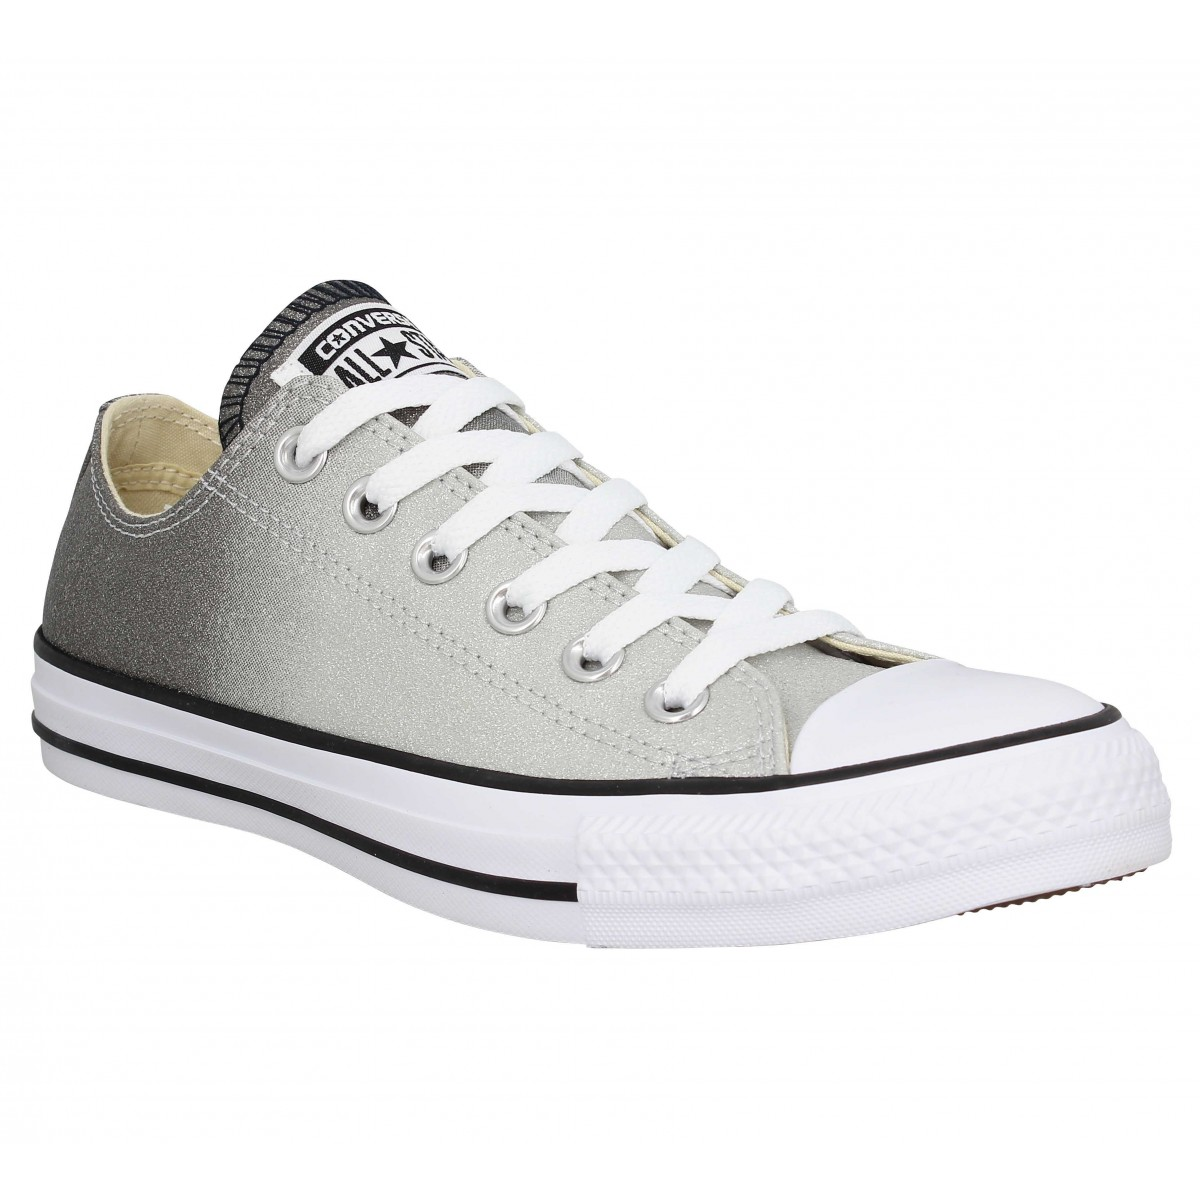 ae19445d68ec4 Baskets CONVERSE Chuck Taylor All Star paillettes Femme Grey